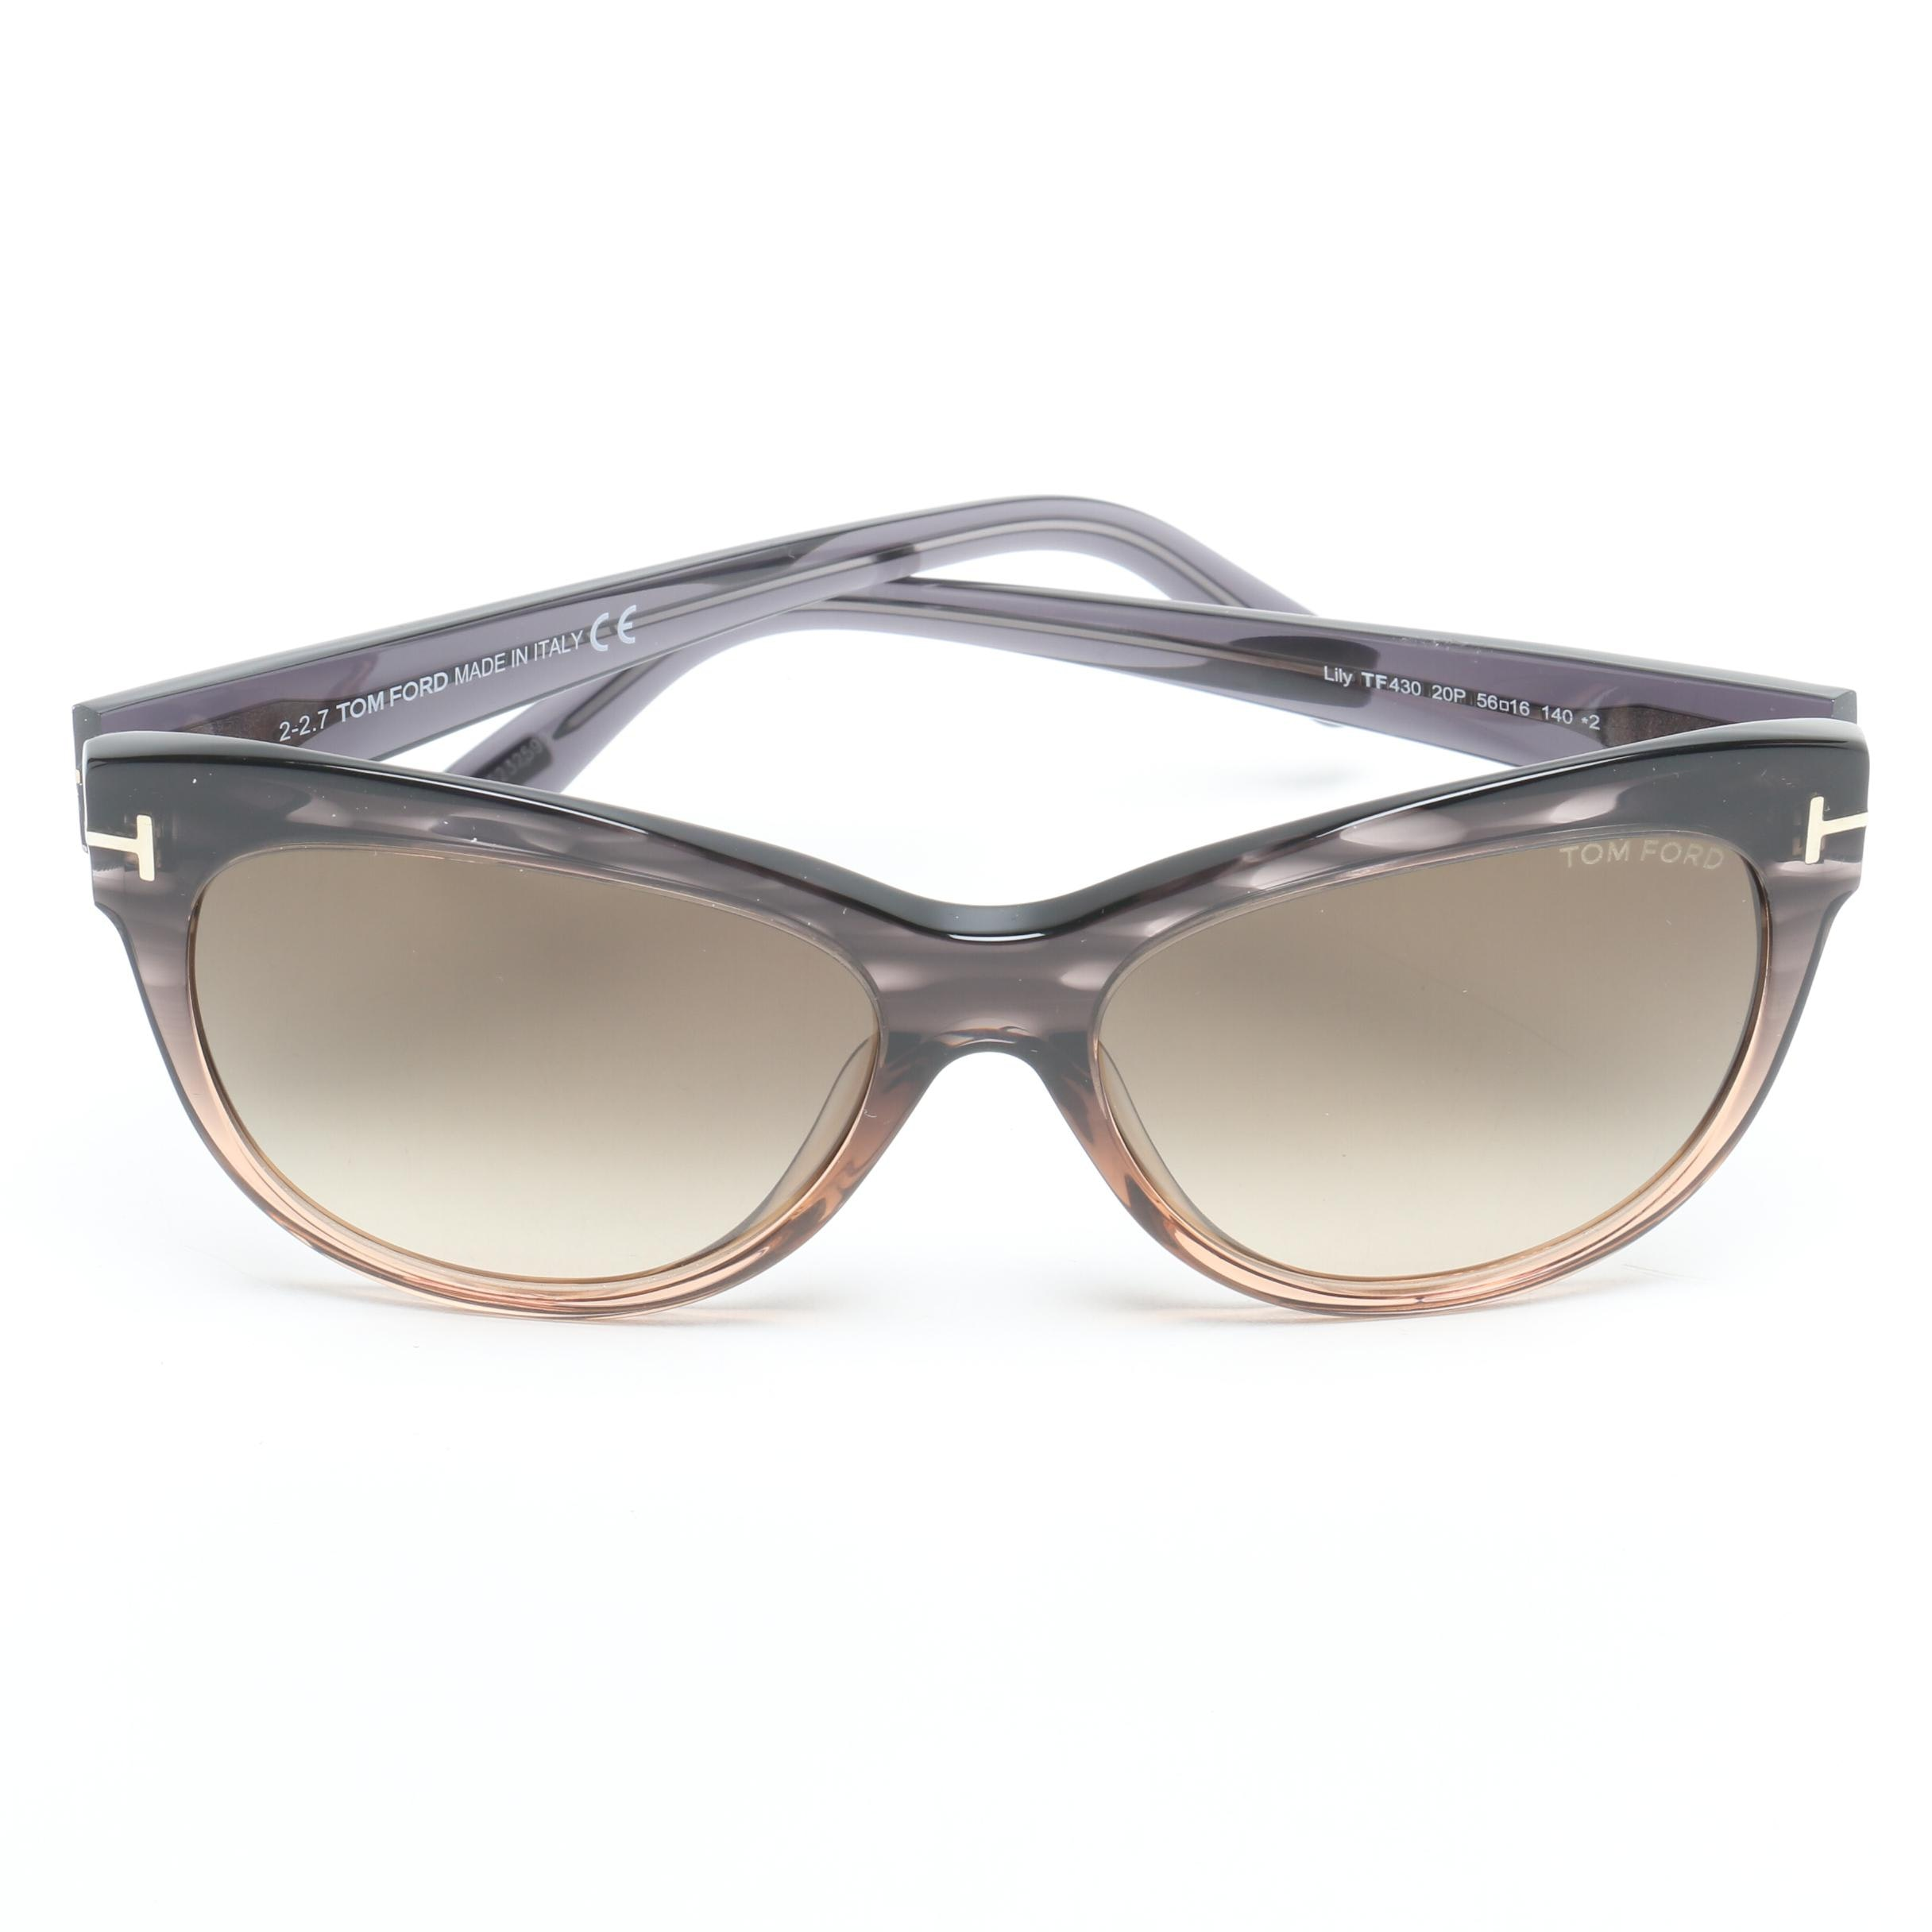 Tom Ford Lily Cat Eye TF430 Sunglasses with Case, Made in Italy